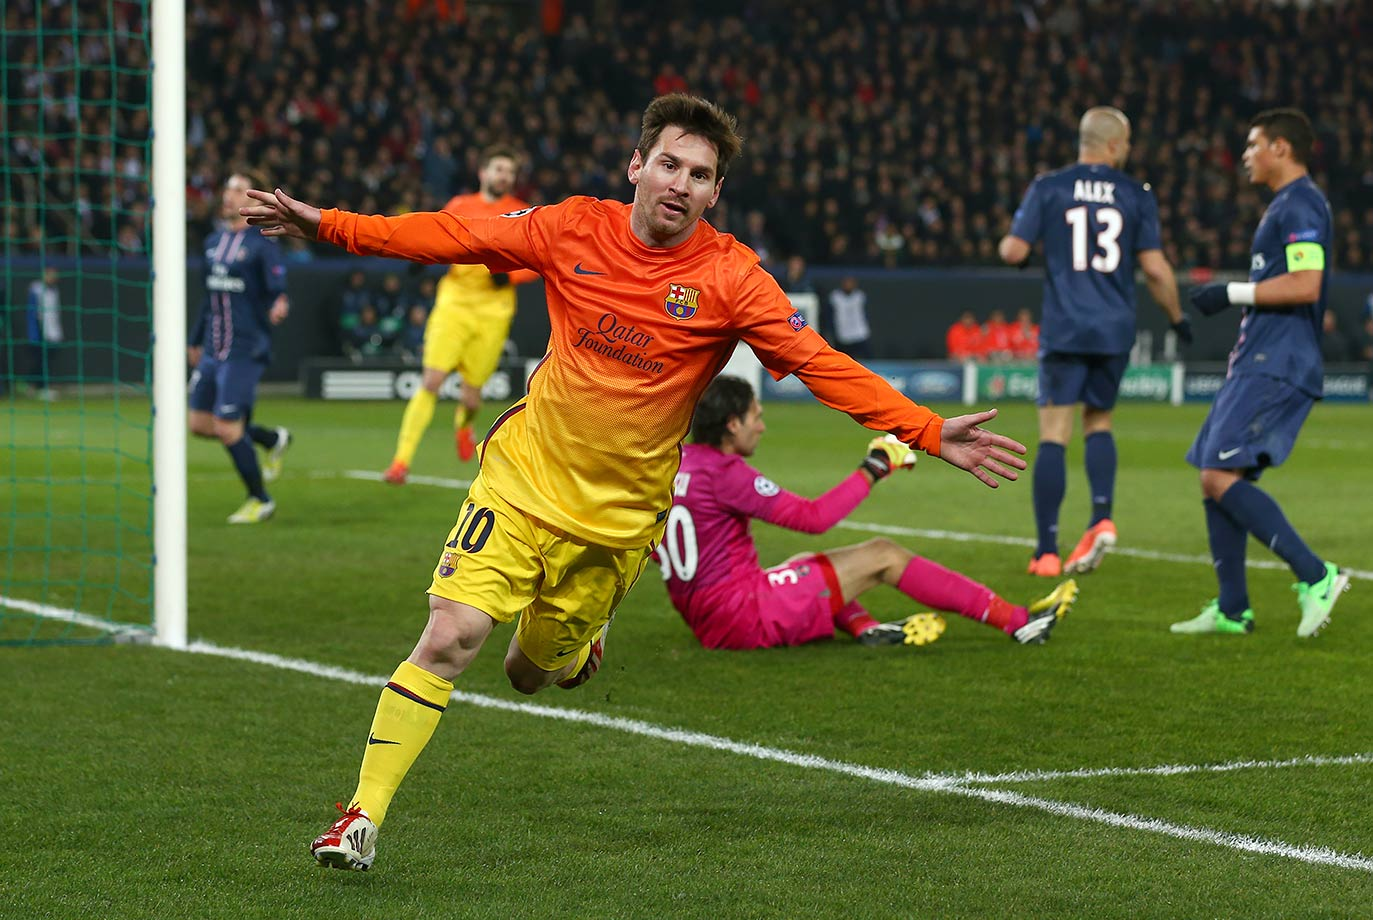 Barcelona's Lionel Messi celebrates scoring the opening goal during their UEFA Champions League quarterfinal match against Paris Saint-Germain on April 2, 2013 at Parc des Princes in Paris, France.